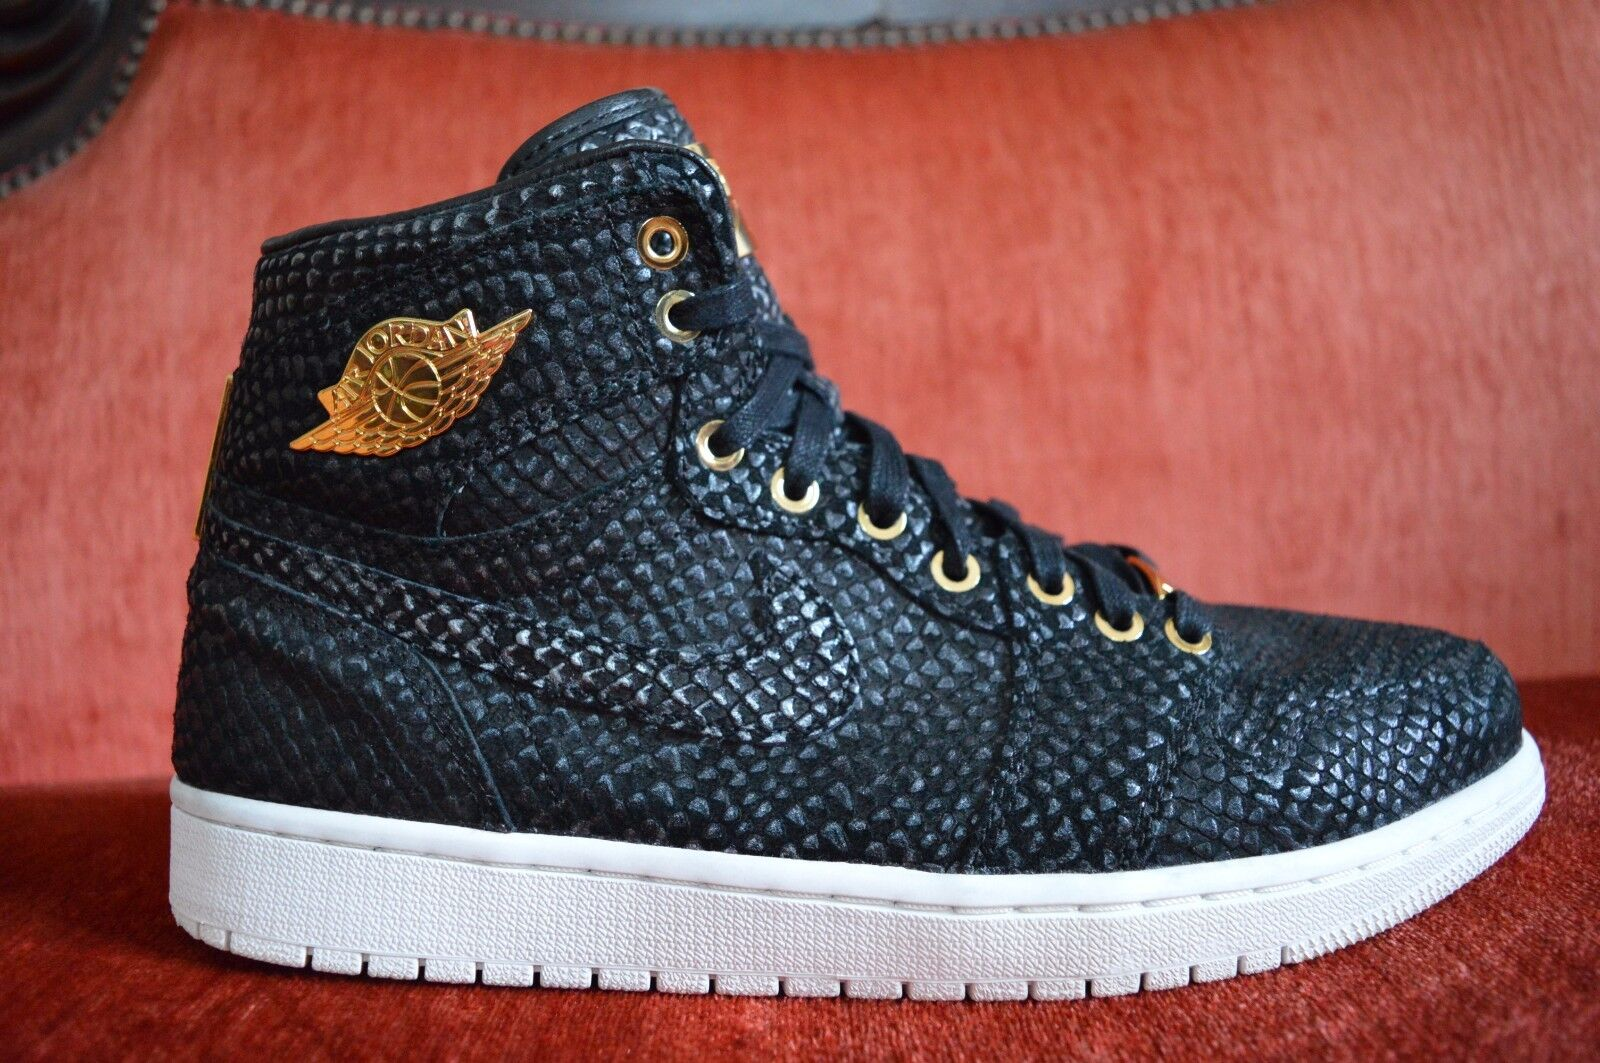 VNDS Nike Air Jordan 1 Pinnacle Black Metallic 24K Gold 705075-030 Mens Size 11